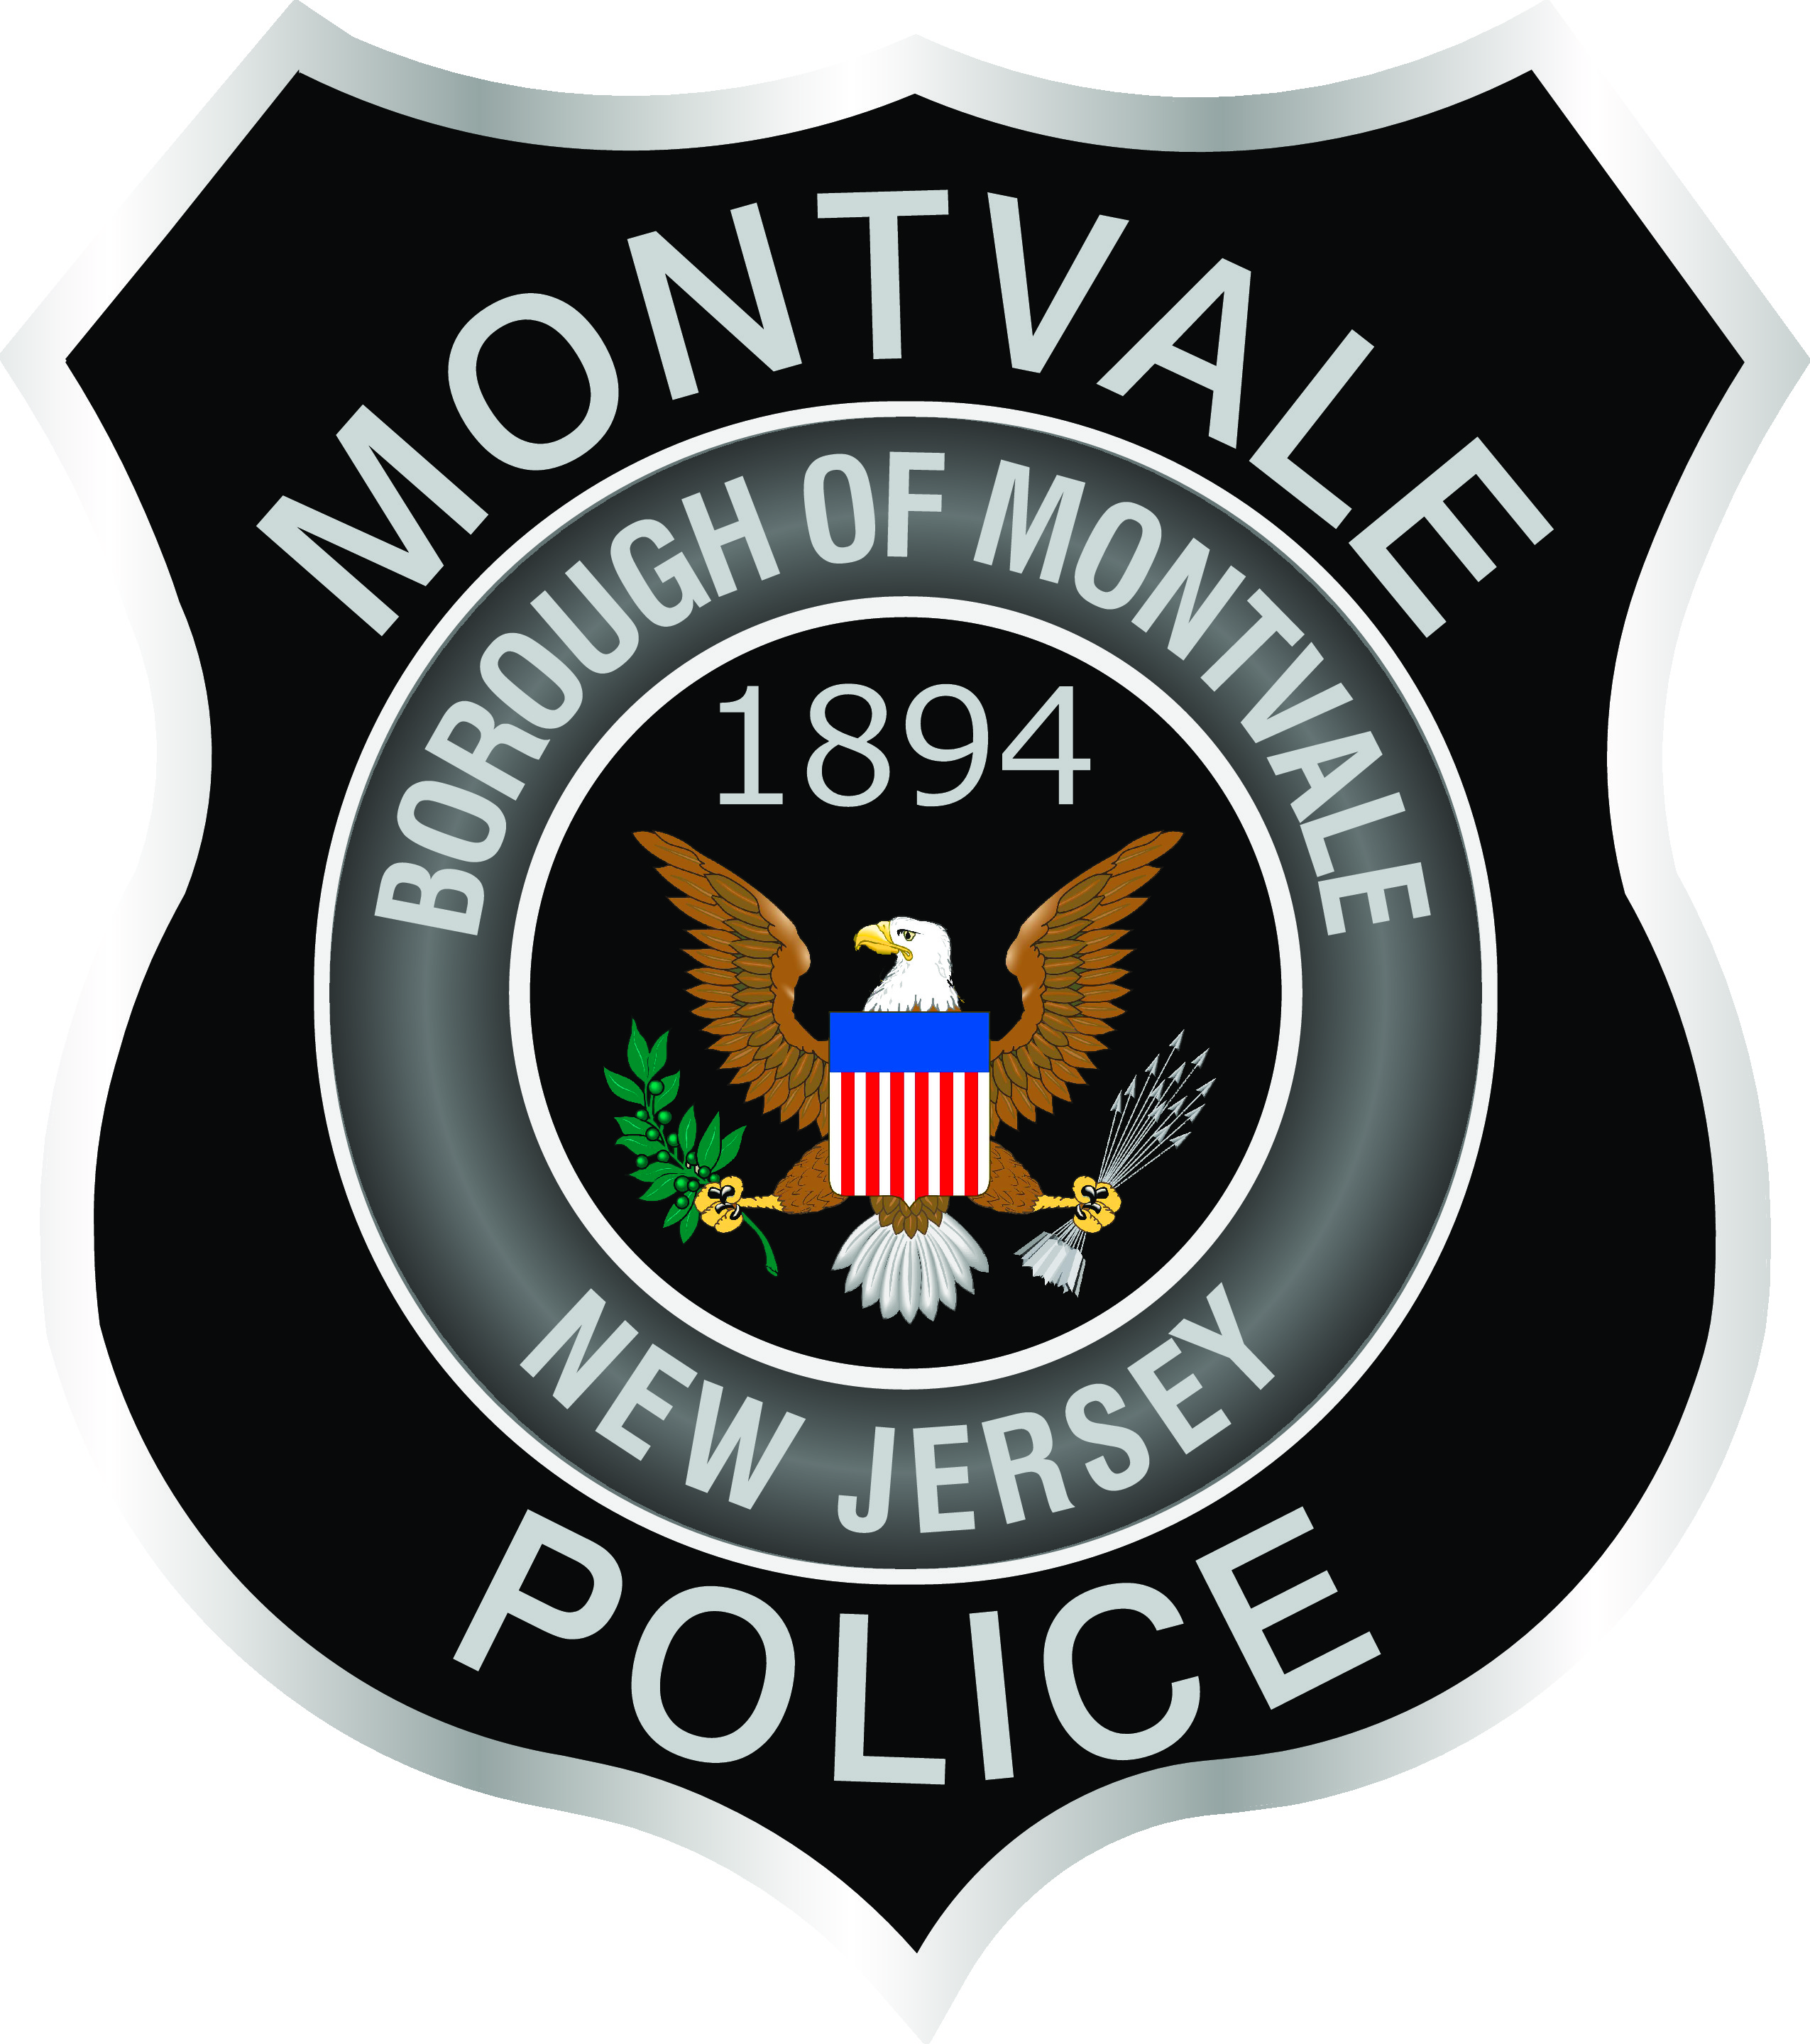 Montvale Police Department, NJ Public Safety Jobs